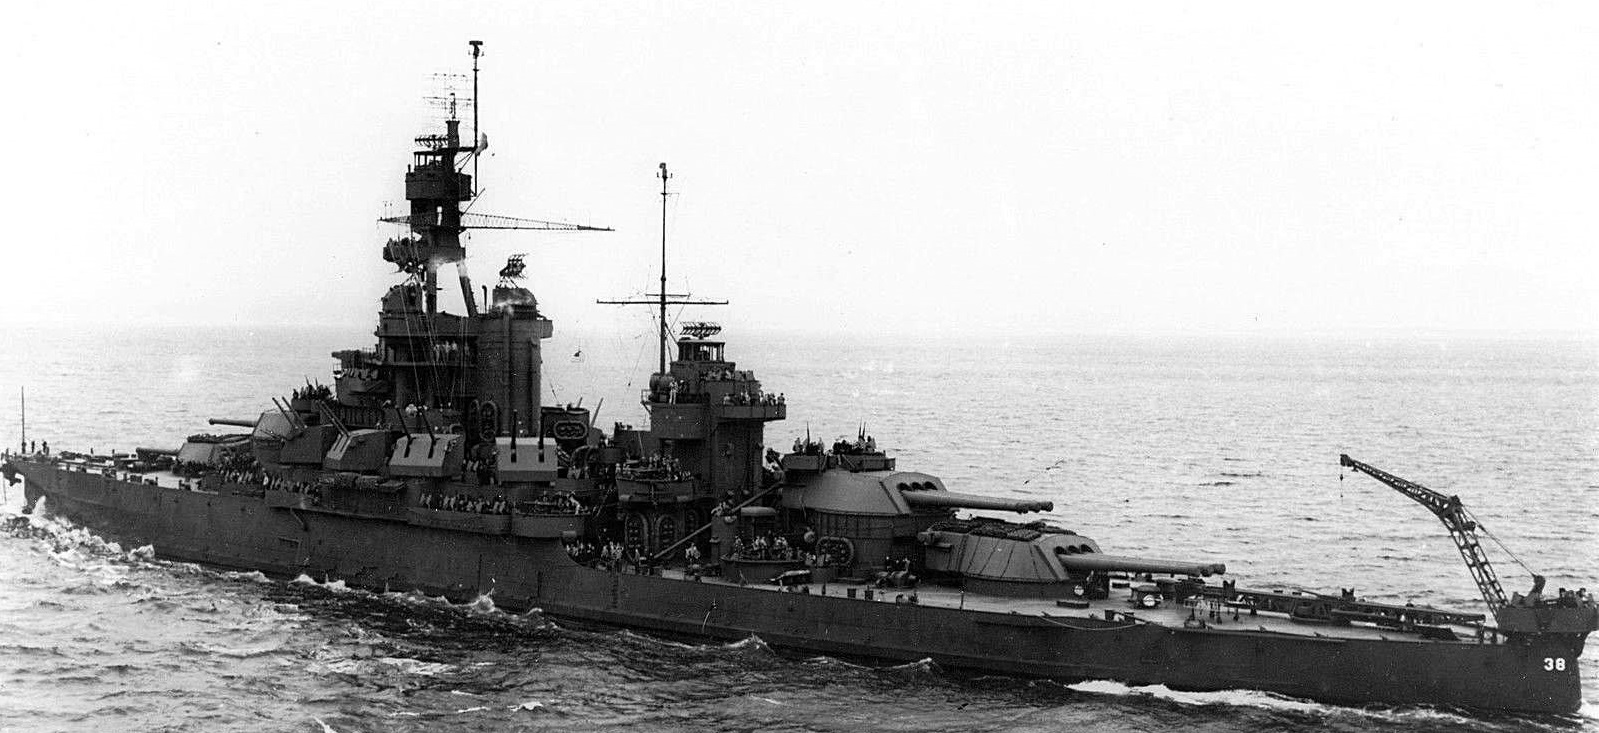 The USS Pennsylvania underway in 1943